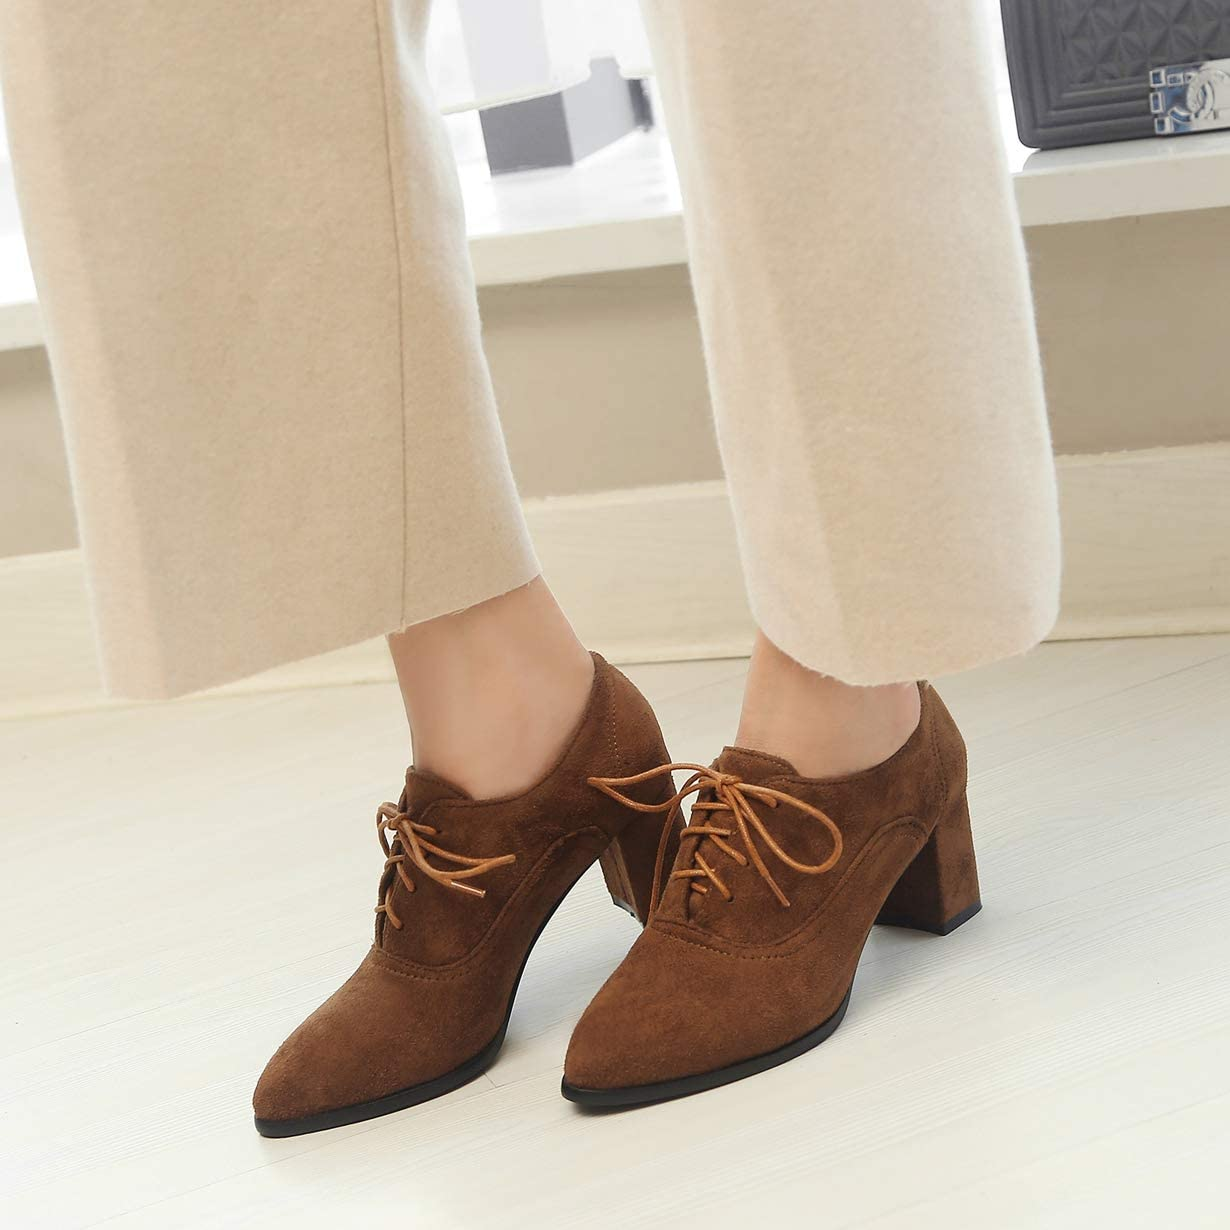 Womens Lace Up Oxford Pumps Pointed Toe Wingtip Suede Chunky Mid Heel Vintage Dress Brogue Shoes